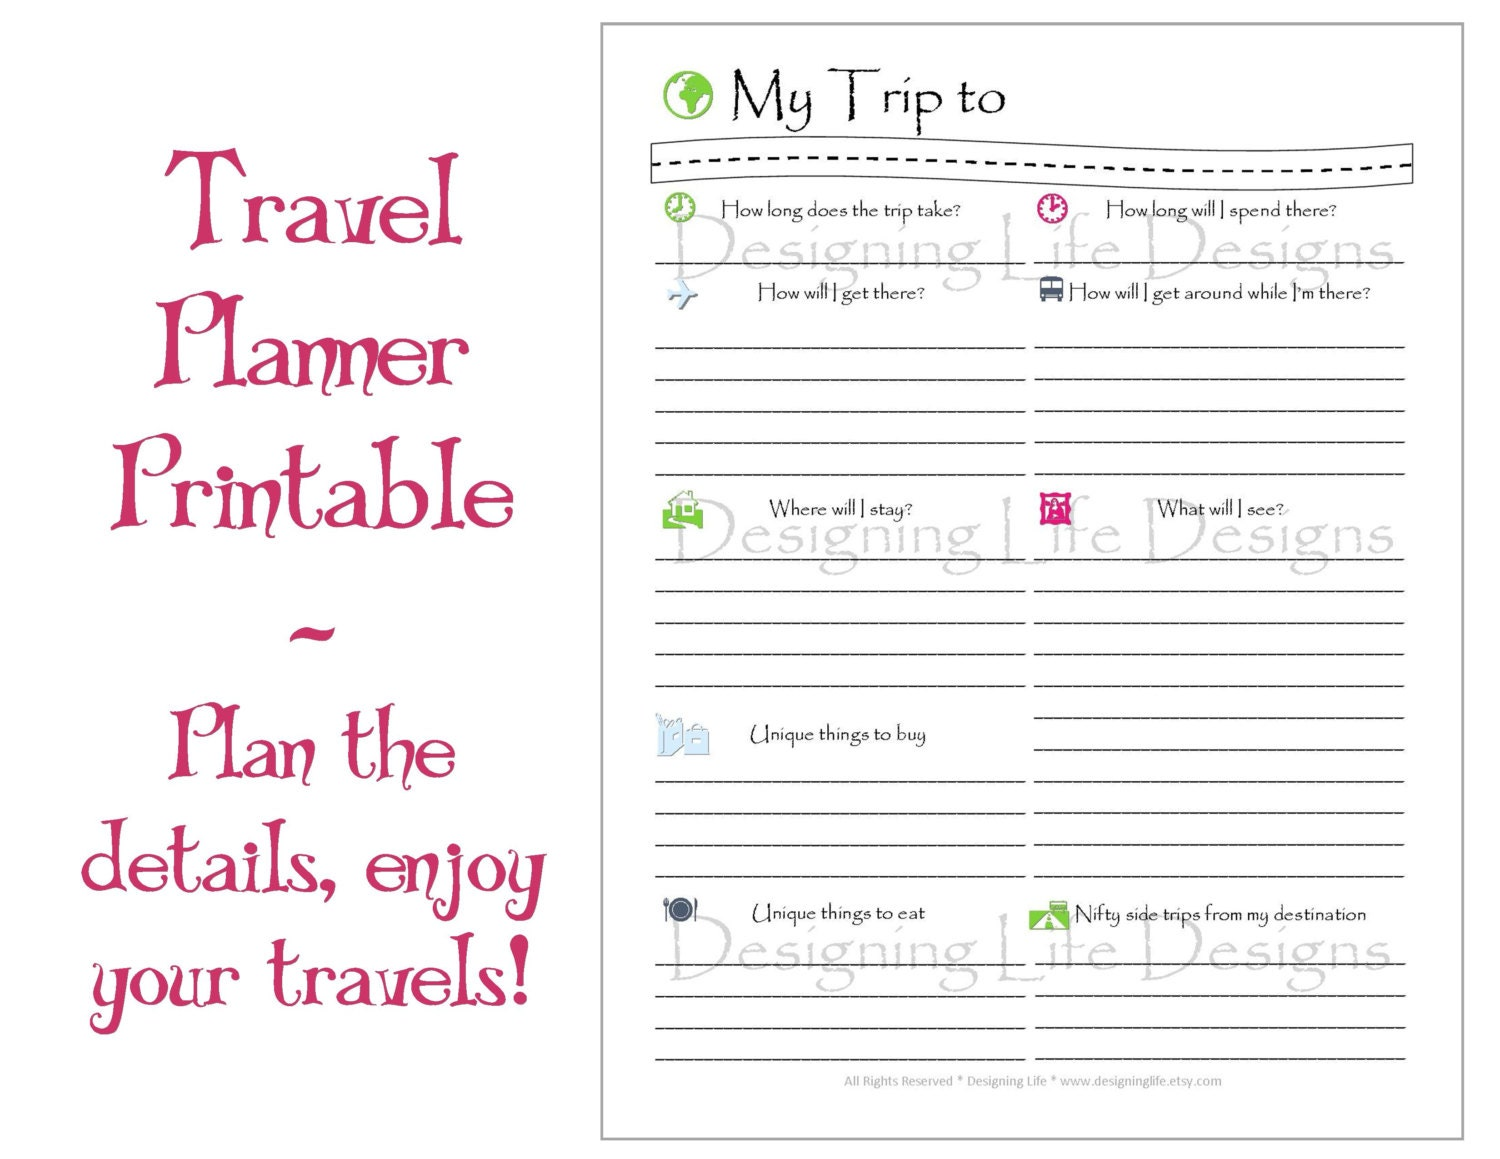 blank trip itinerary template - vacation travel planner printable pdf sheets my trip to